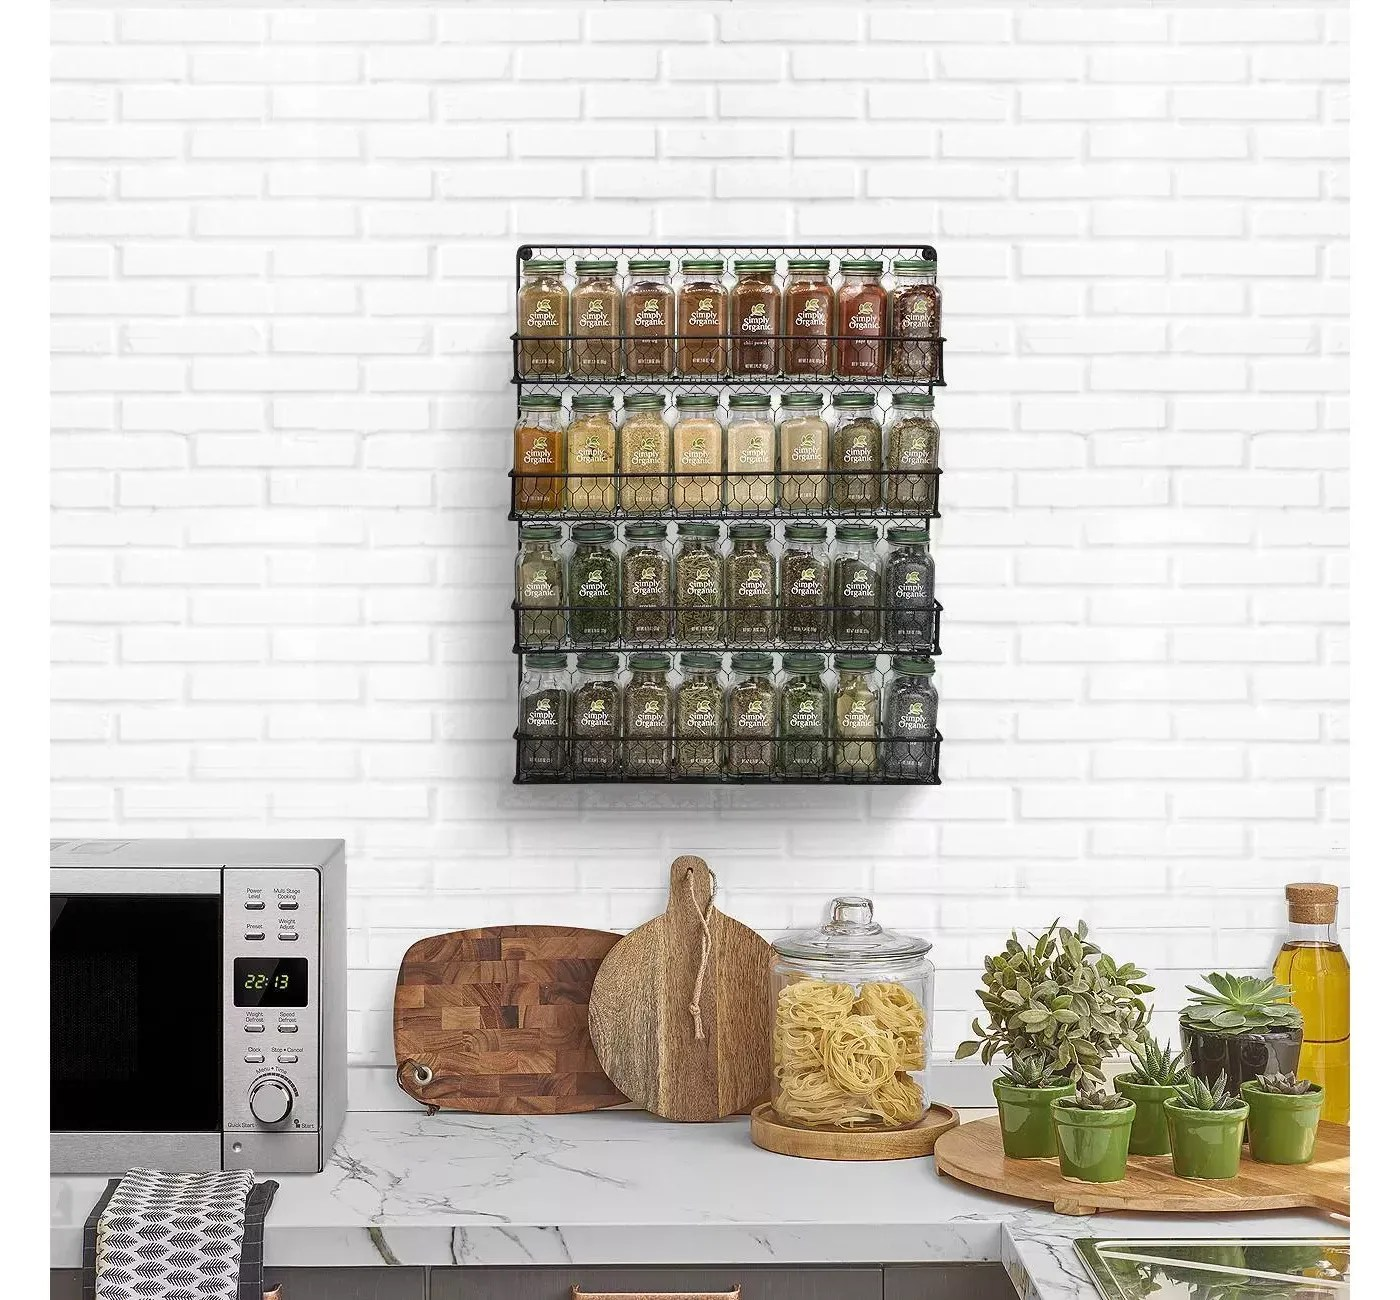 12 clever spice storage ideas for small